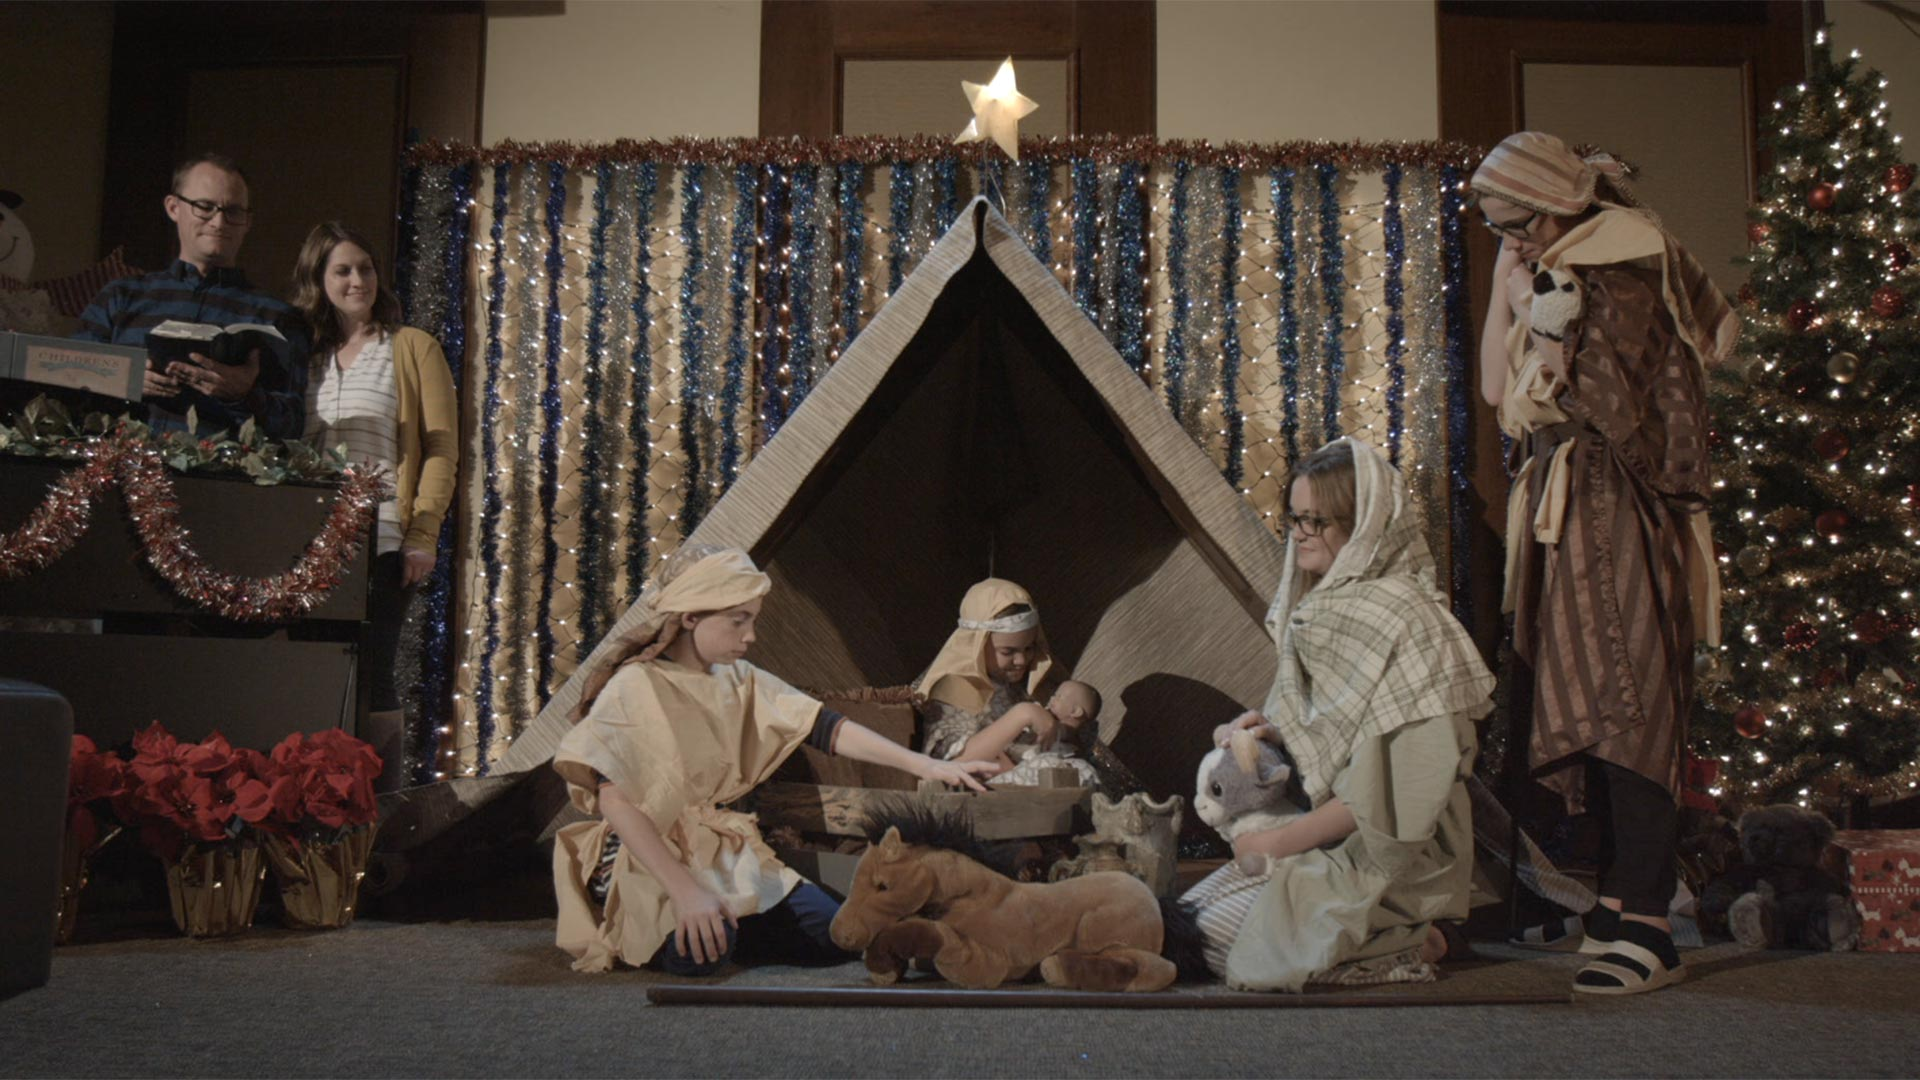 A family performing a Nativity scene.